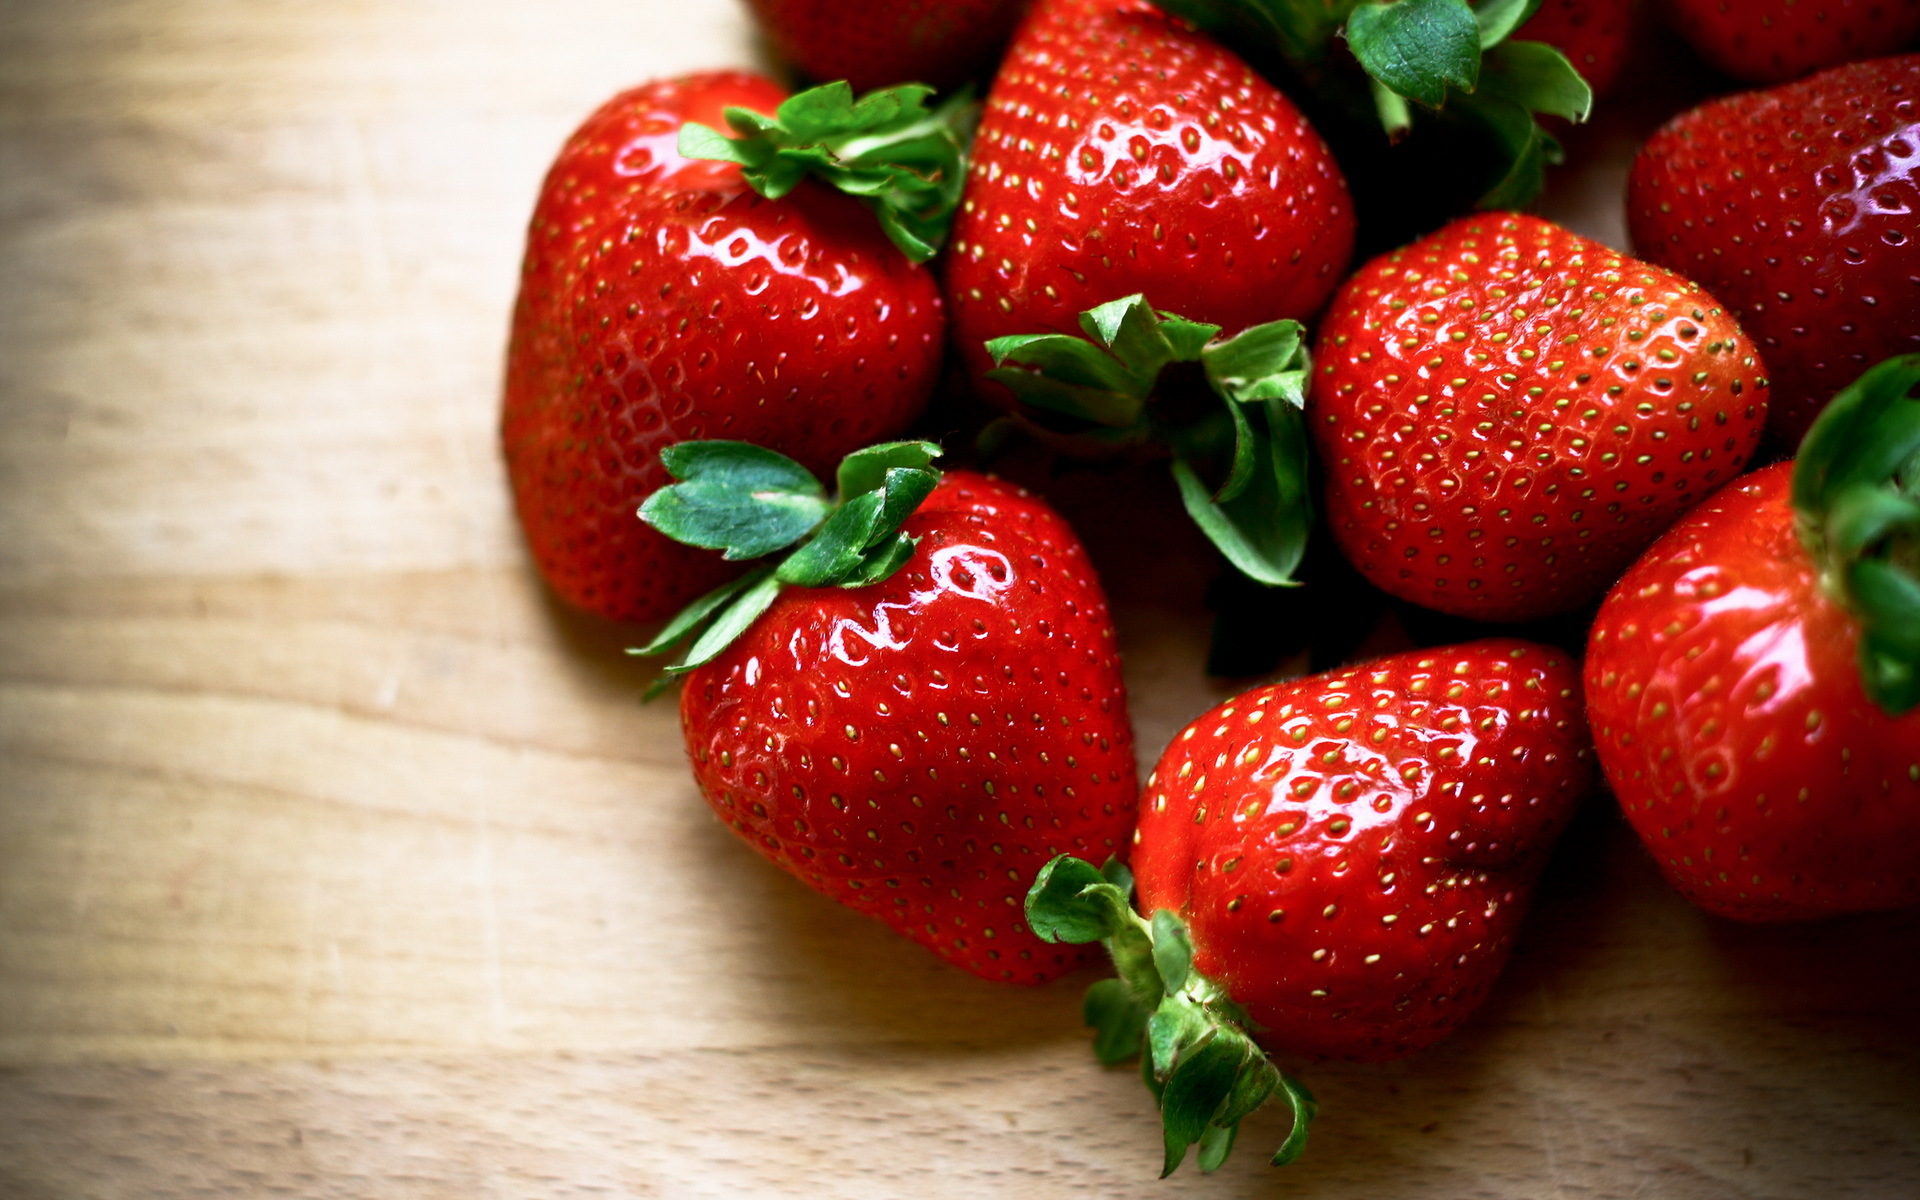 Download Hd Wallpaper Of Strawberry Juice: 15 Outstanding HD Fruit Wallpapers